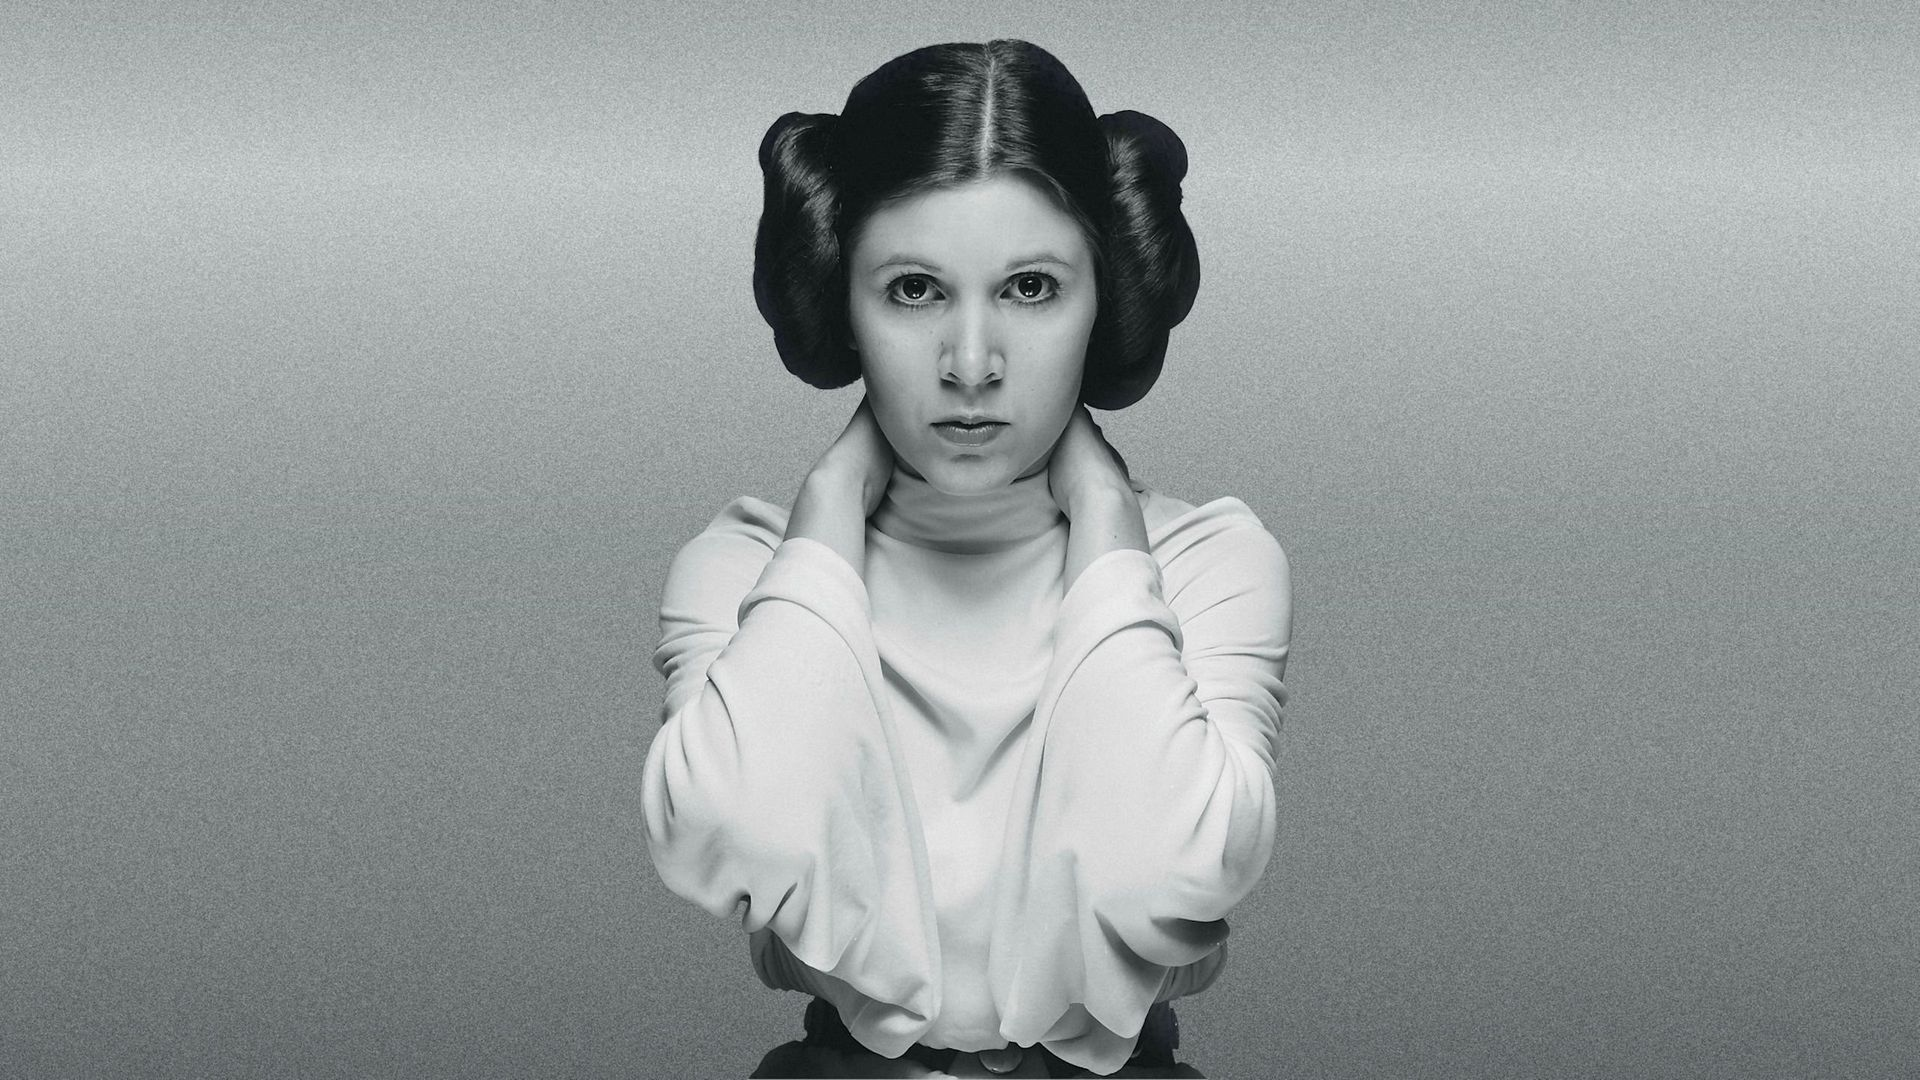 1920x1080 - Carrie Fisher Wallpapers 10